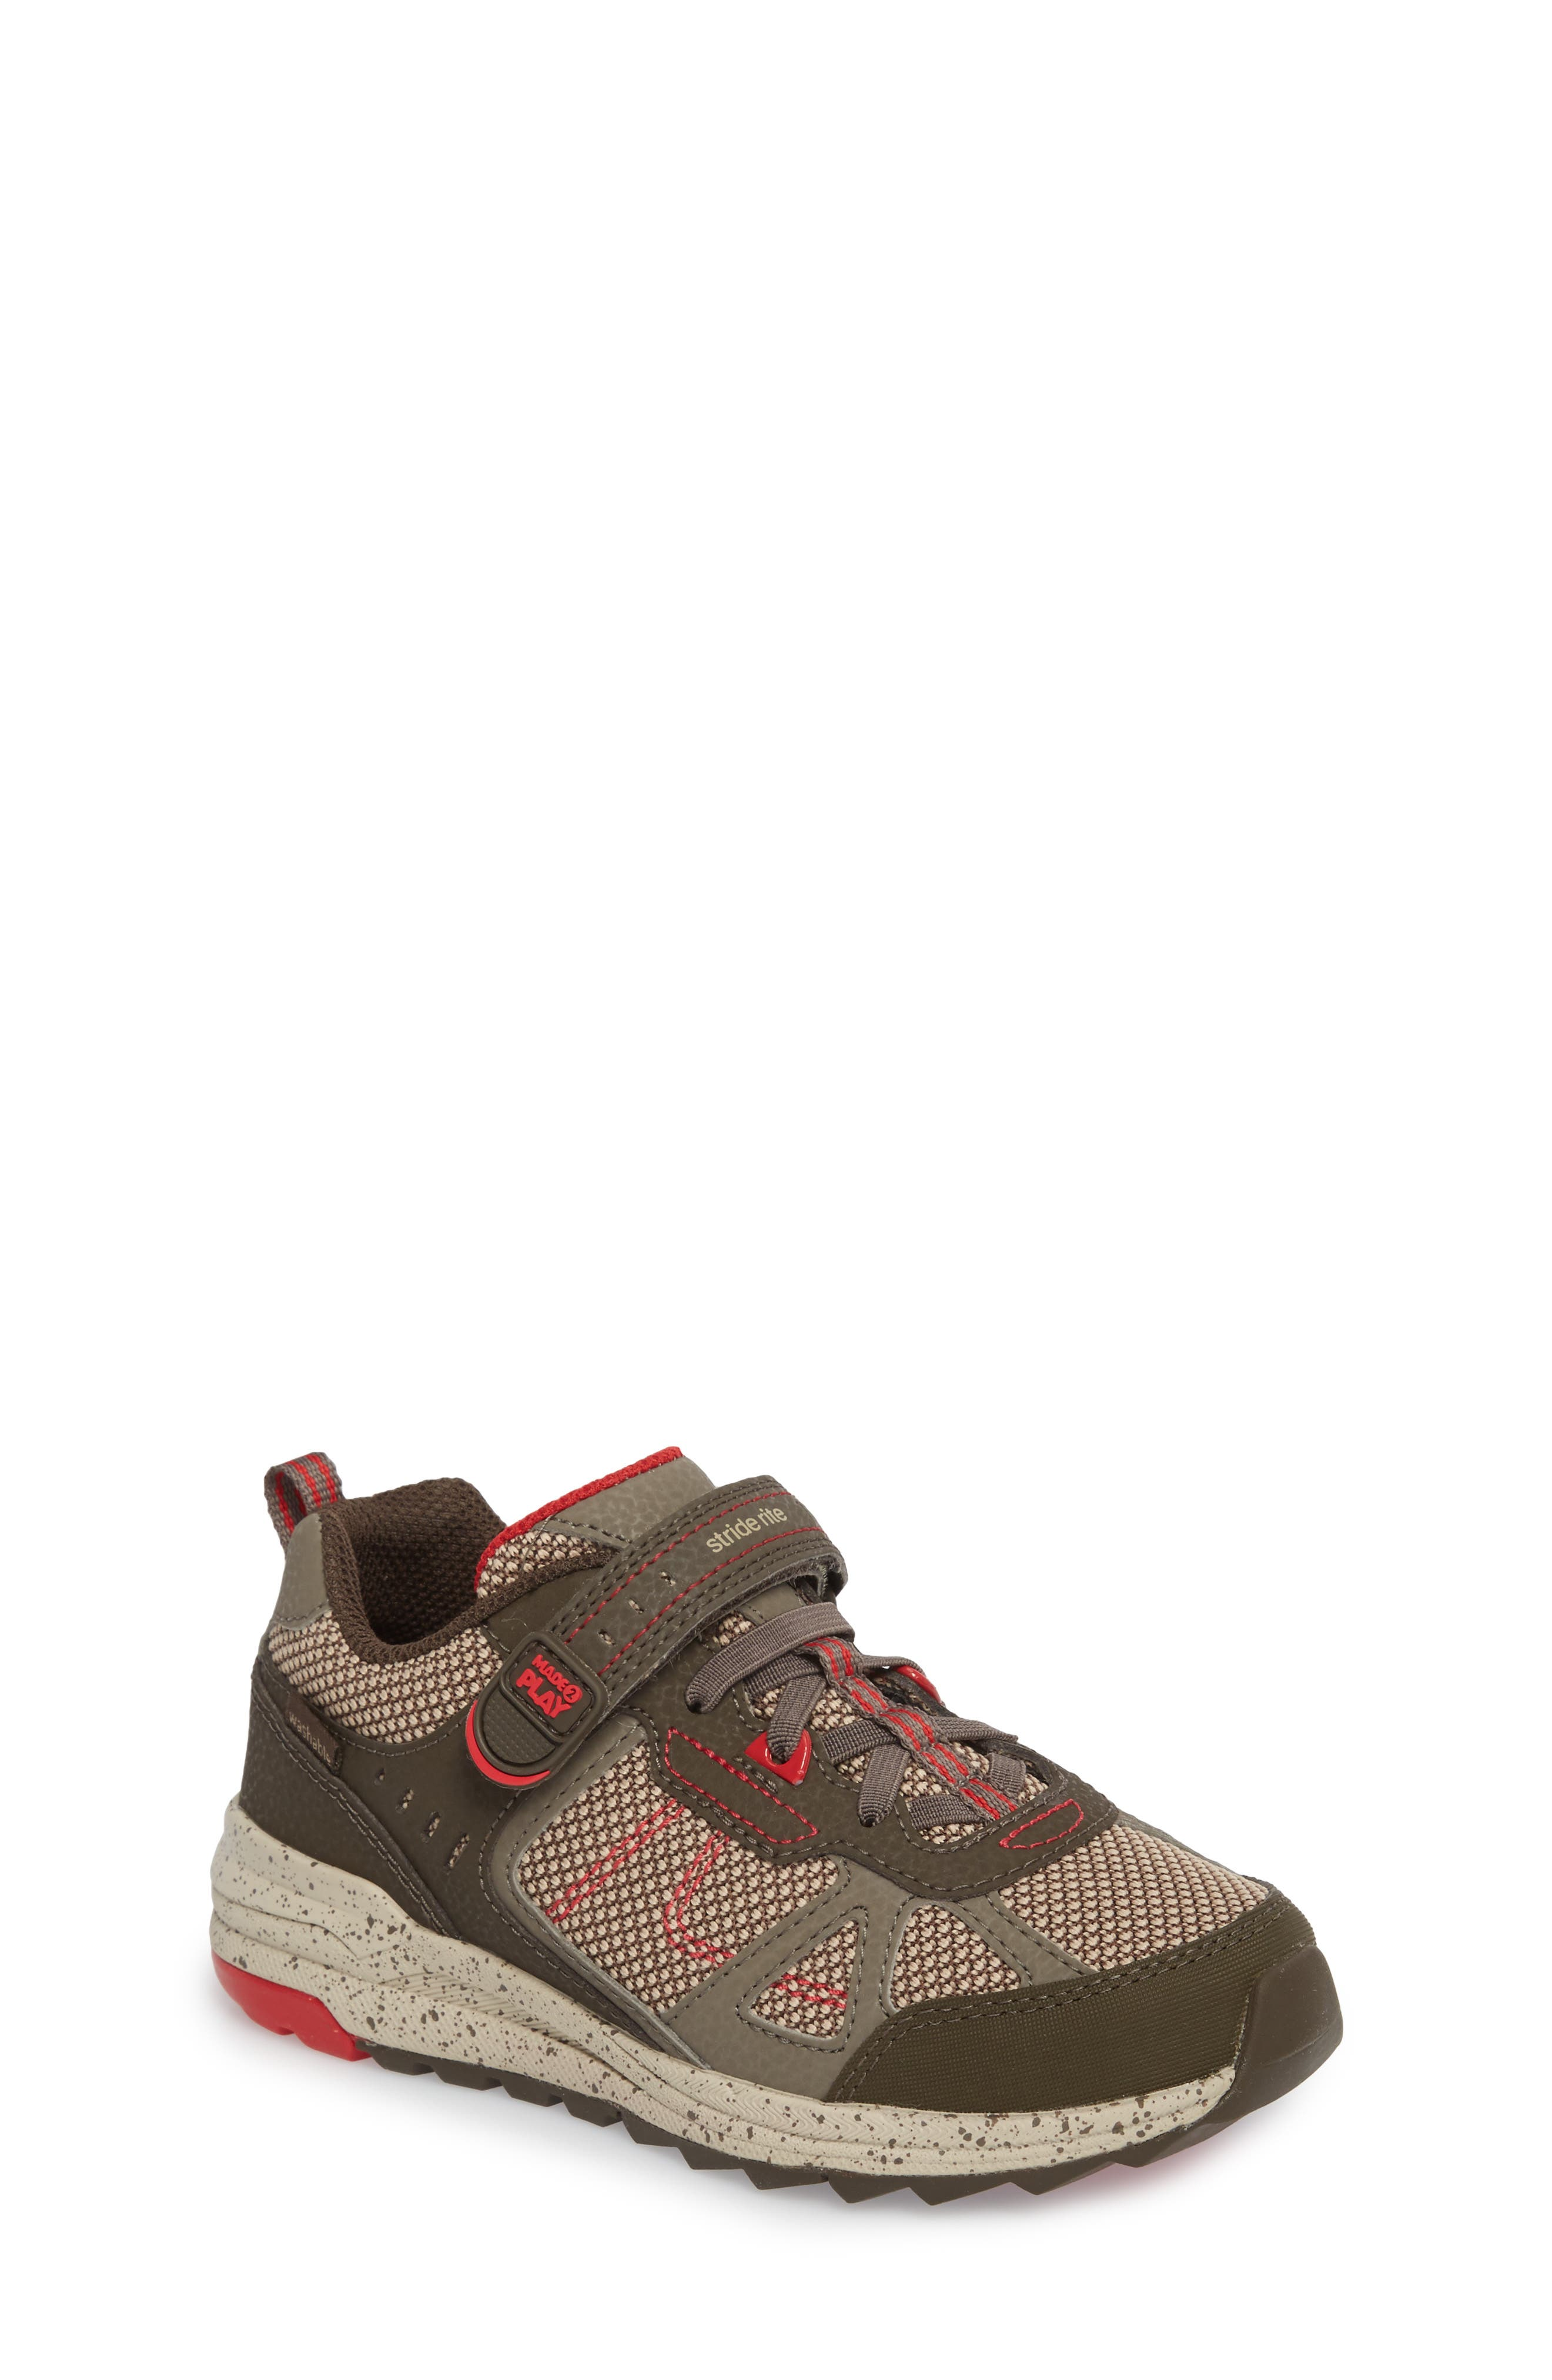 Made2Play<sup>®</sup> Owen Washable Sneaker,                         Main,                         color, BROWN LEATHER/ TEXTILE